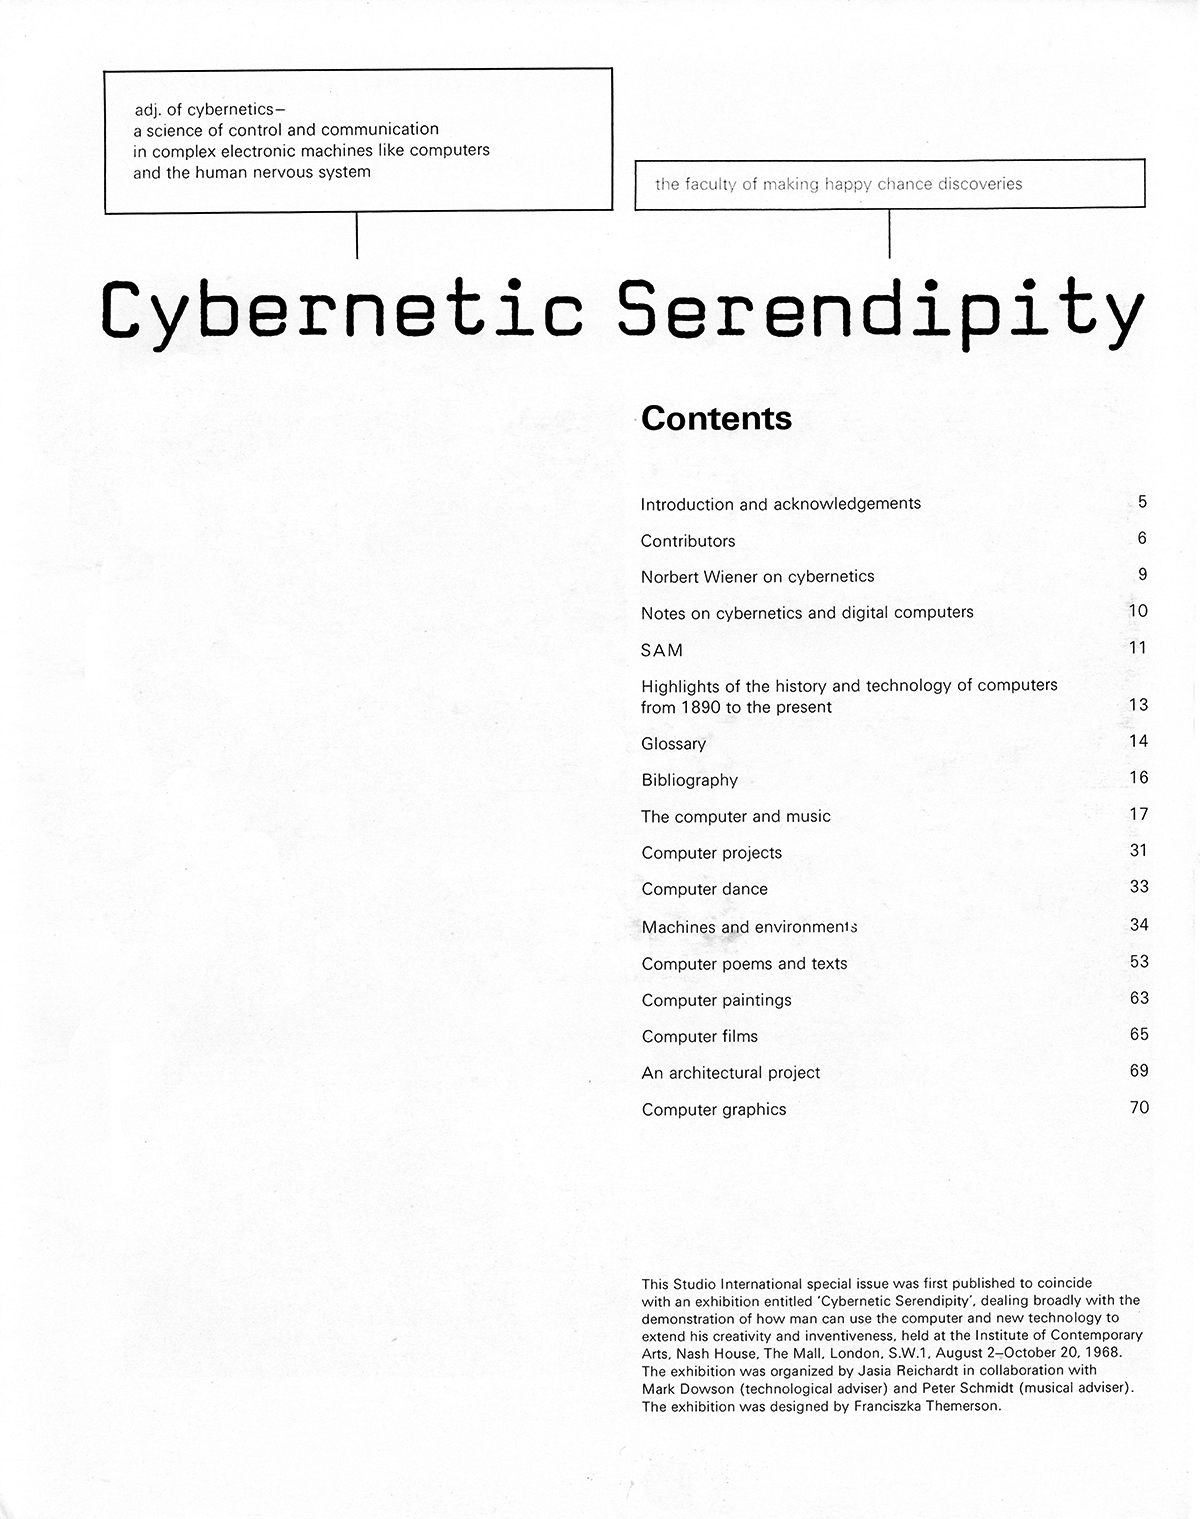 Cybernetic Serendipity: The Computer and the Arts, Studio International Special Issue, 1968, contents page.